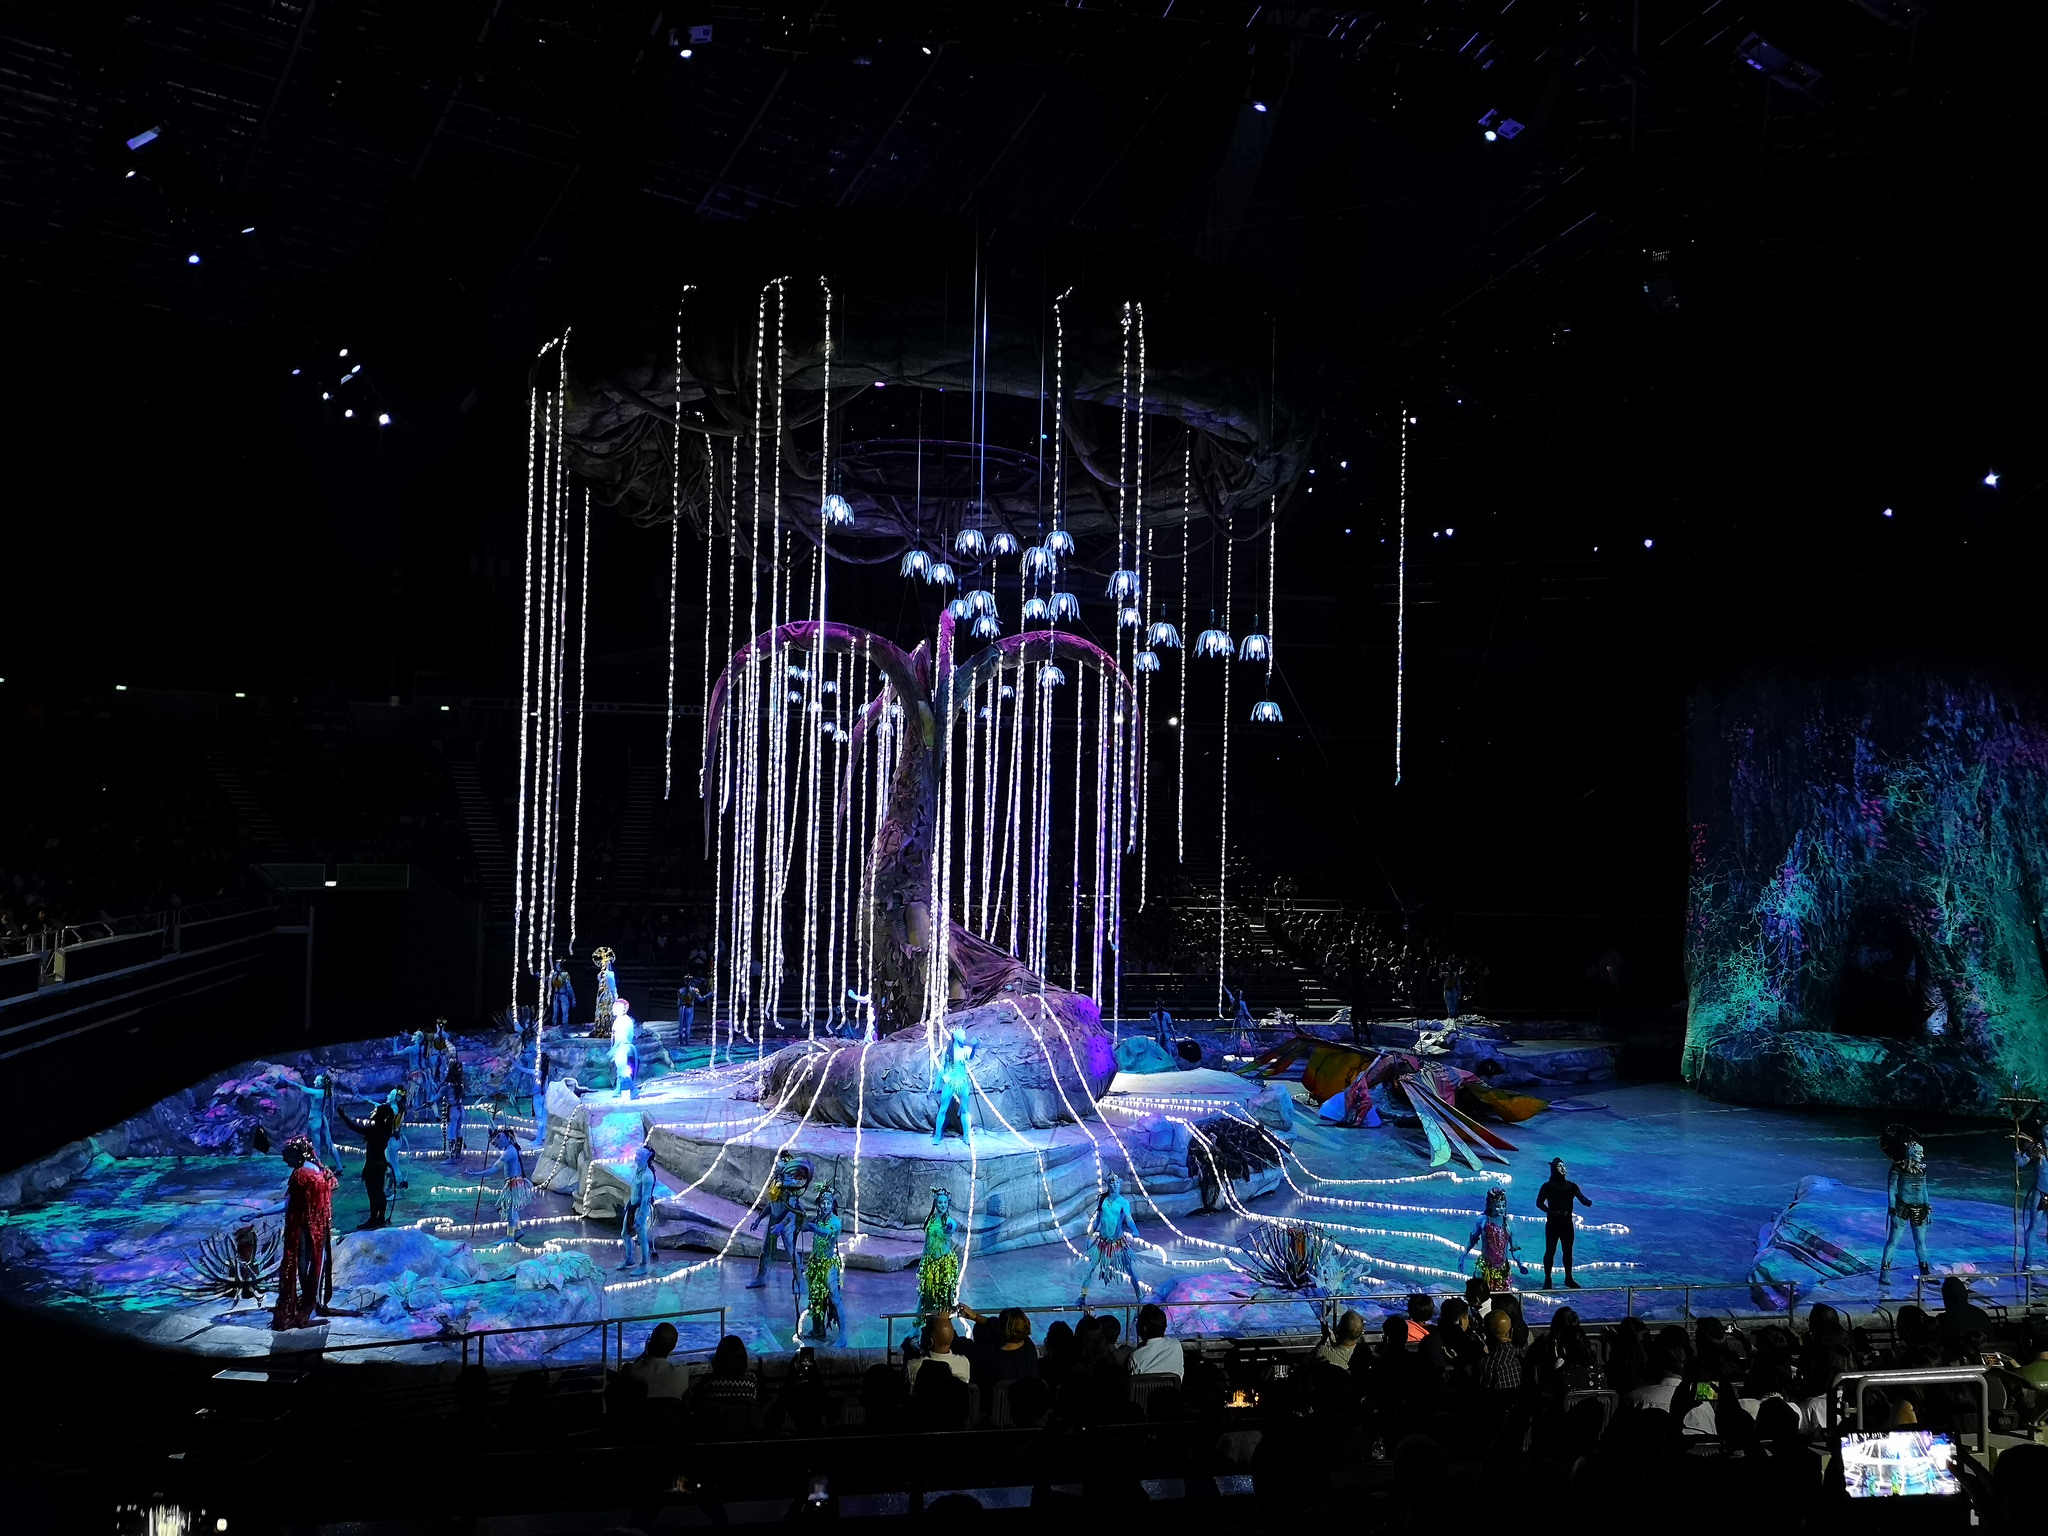 Toruk - The First Flight sweeps feet with lights and show - Alvinology